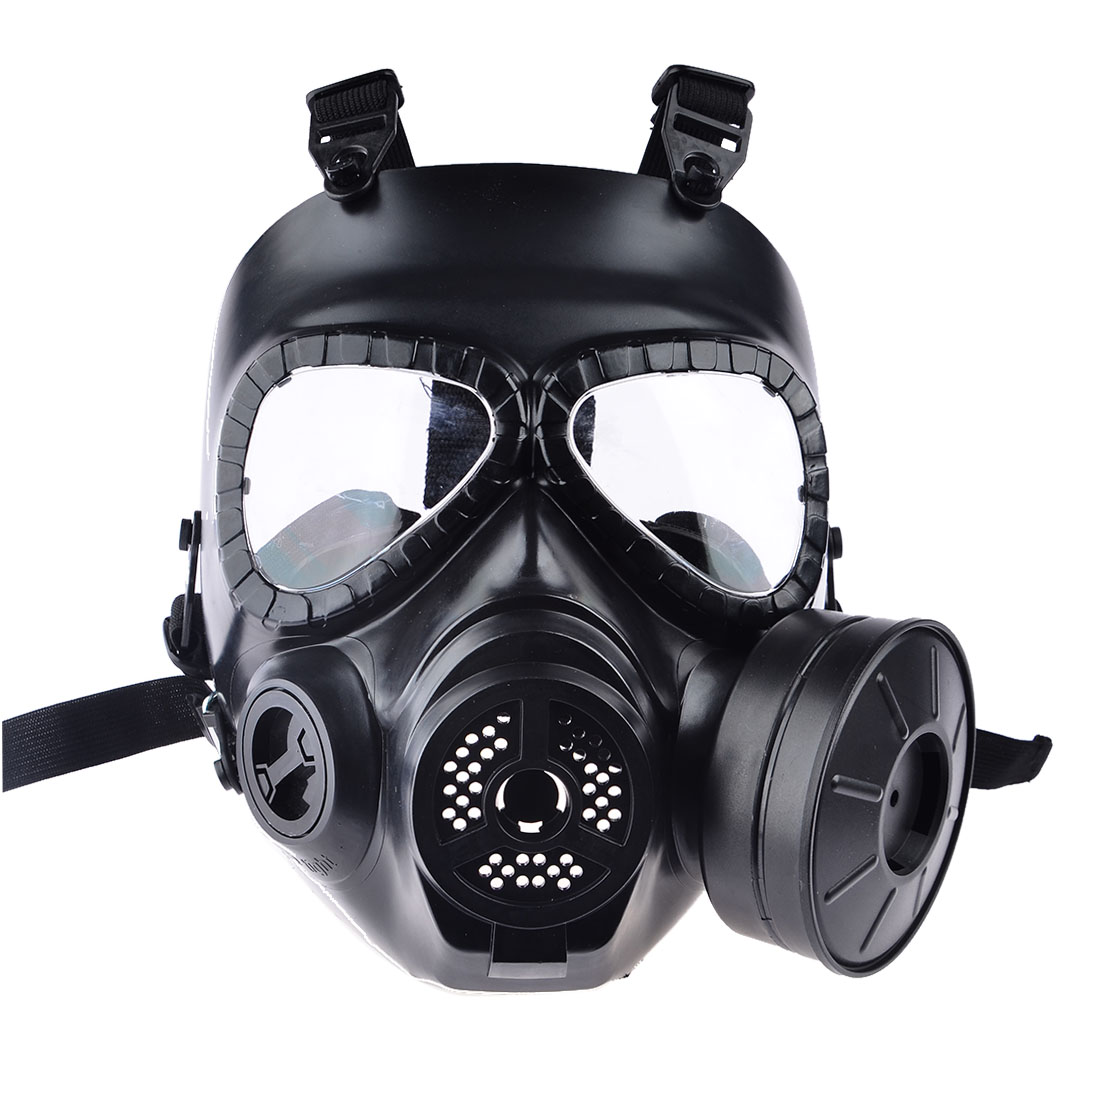 Hot CS Airsoft Paintball Dummy Gas Mask with Fan for Cosplay Protection Halloween Evil Antivirus Skull Festival Decor(China (Mainland))